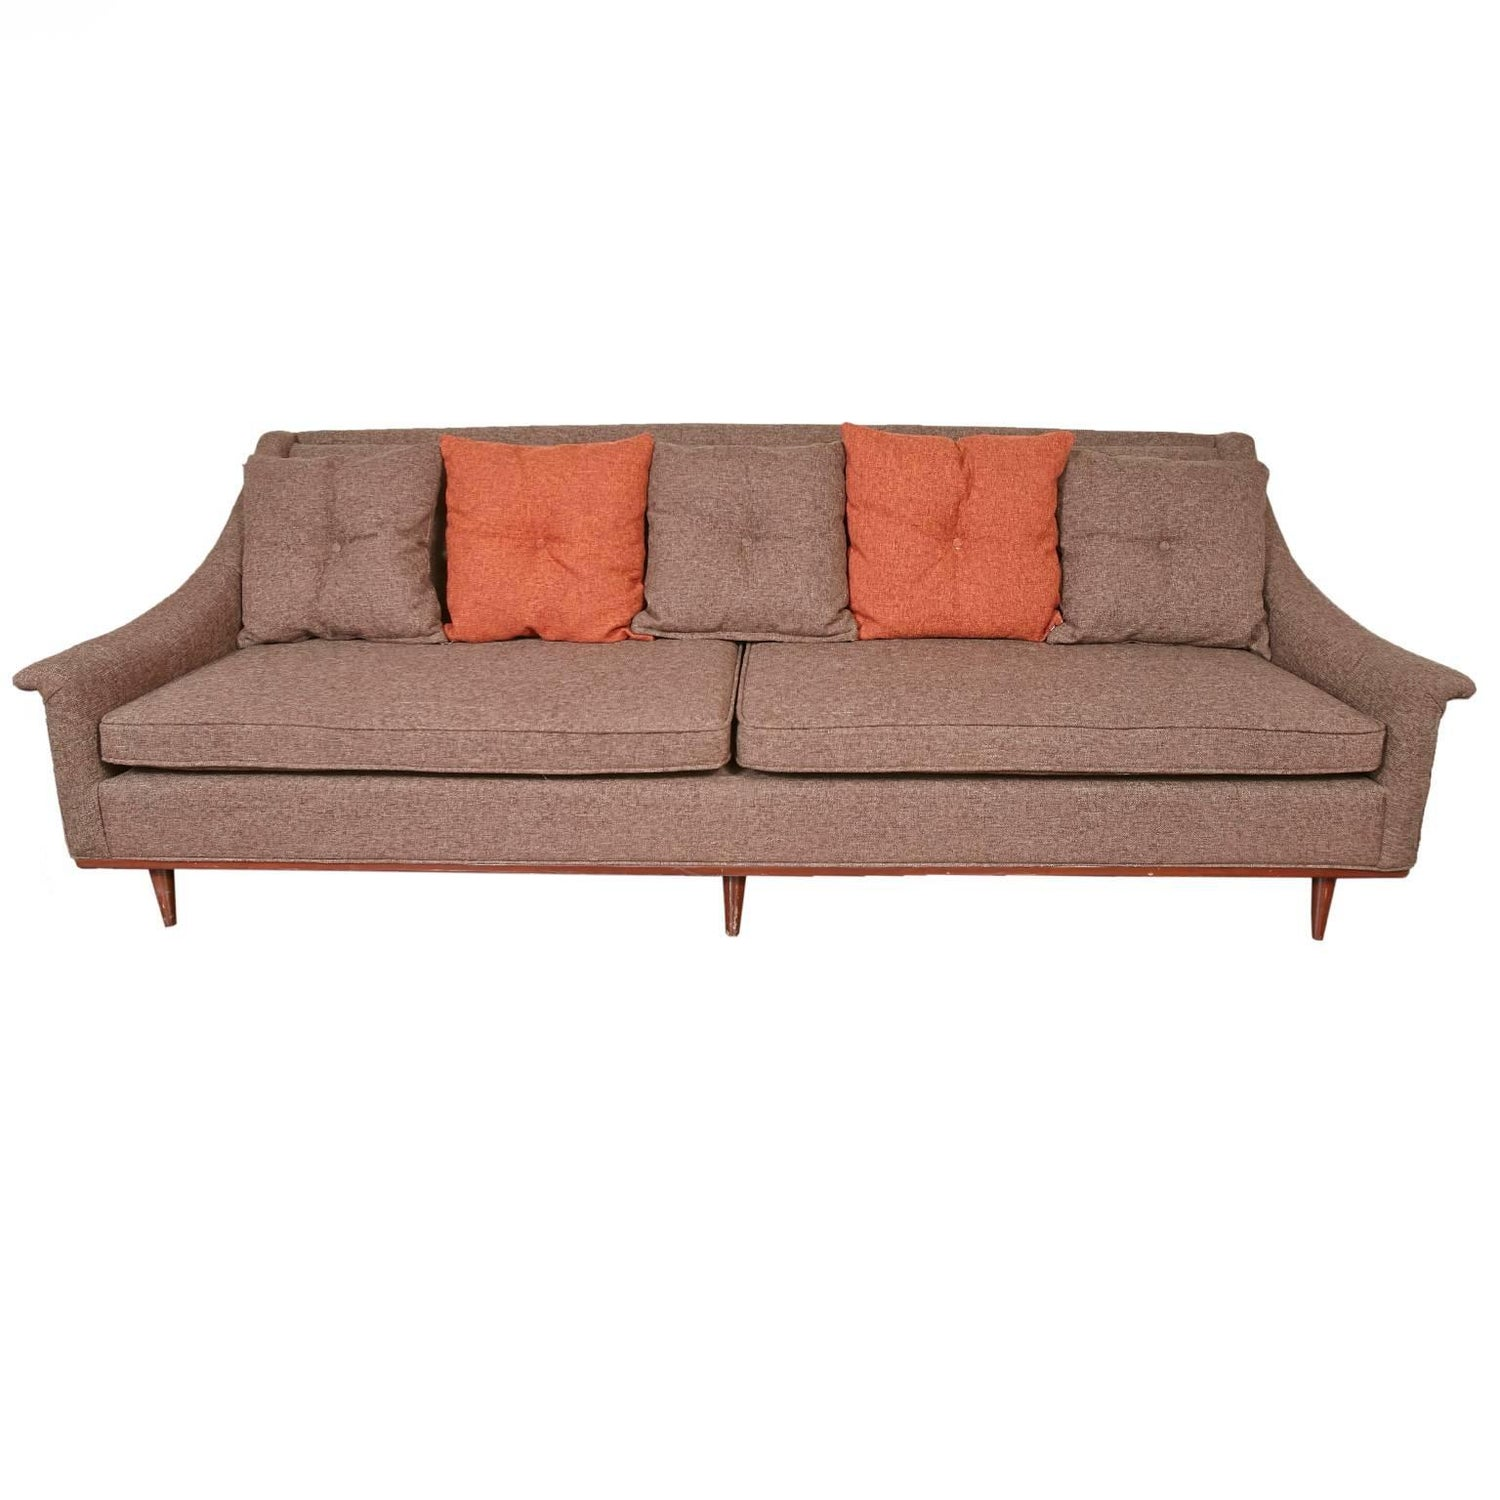 Long Low Selig Mid Century Modern Sofa at 1stdibs